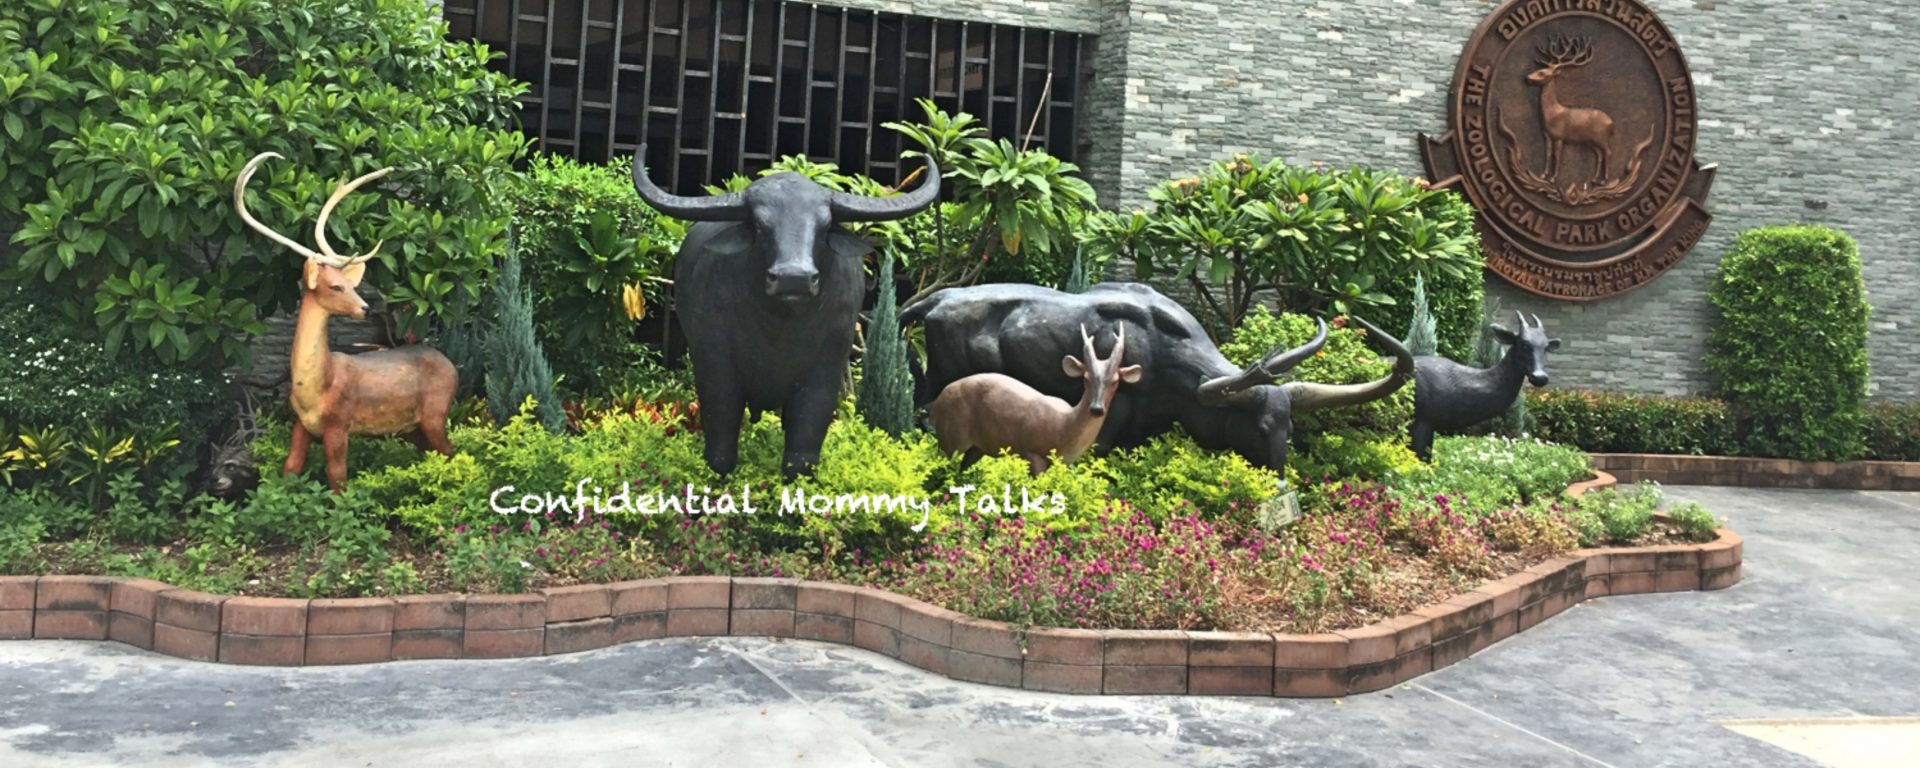 Dusit Zoo | Family Fun Day Out in Bangkok | Since we moved to Bangkok, we've twice been to the Dusit Zoo, as it's a great way to introduce young kids and toddlers to wildlife. The zoo contains over 1,600 animals and covers an area of over 188,000 sq m. With such a wide space and diverse selection of animals to observe, we've had the chance to explore different zones each time we've been there (and we haven't seen it all yet!).